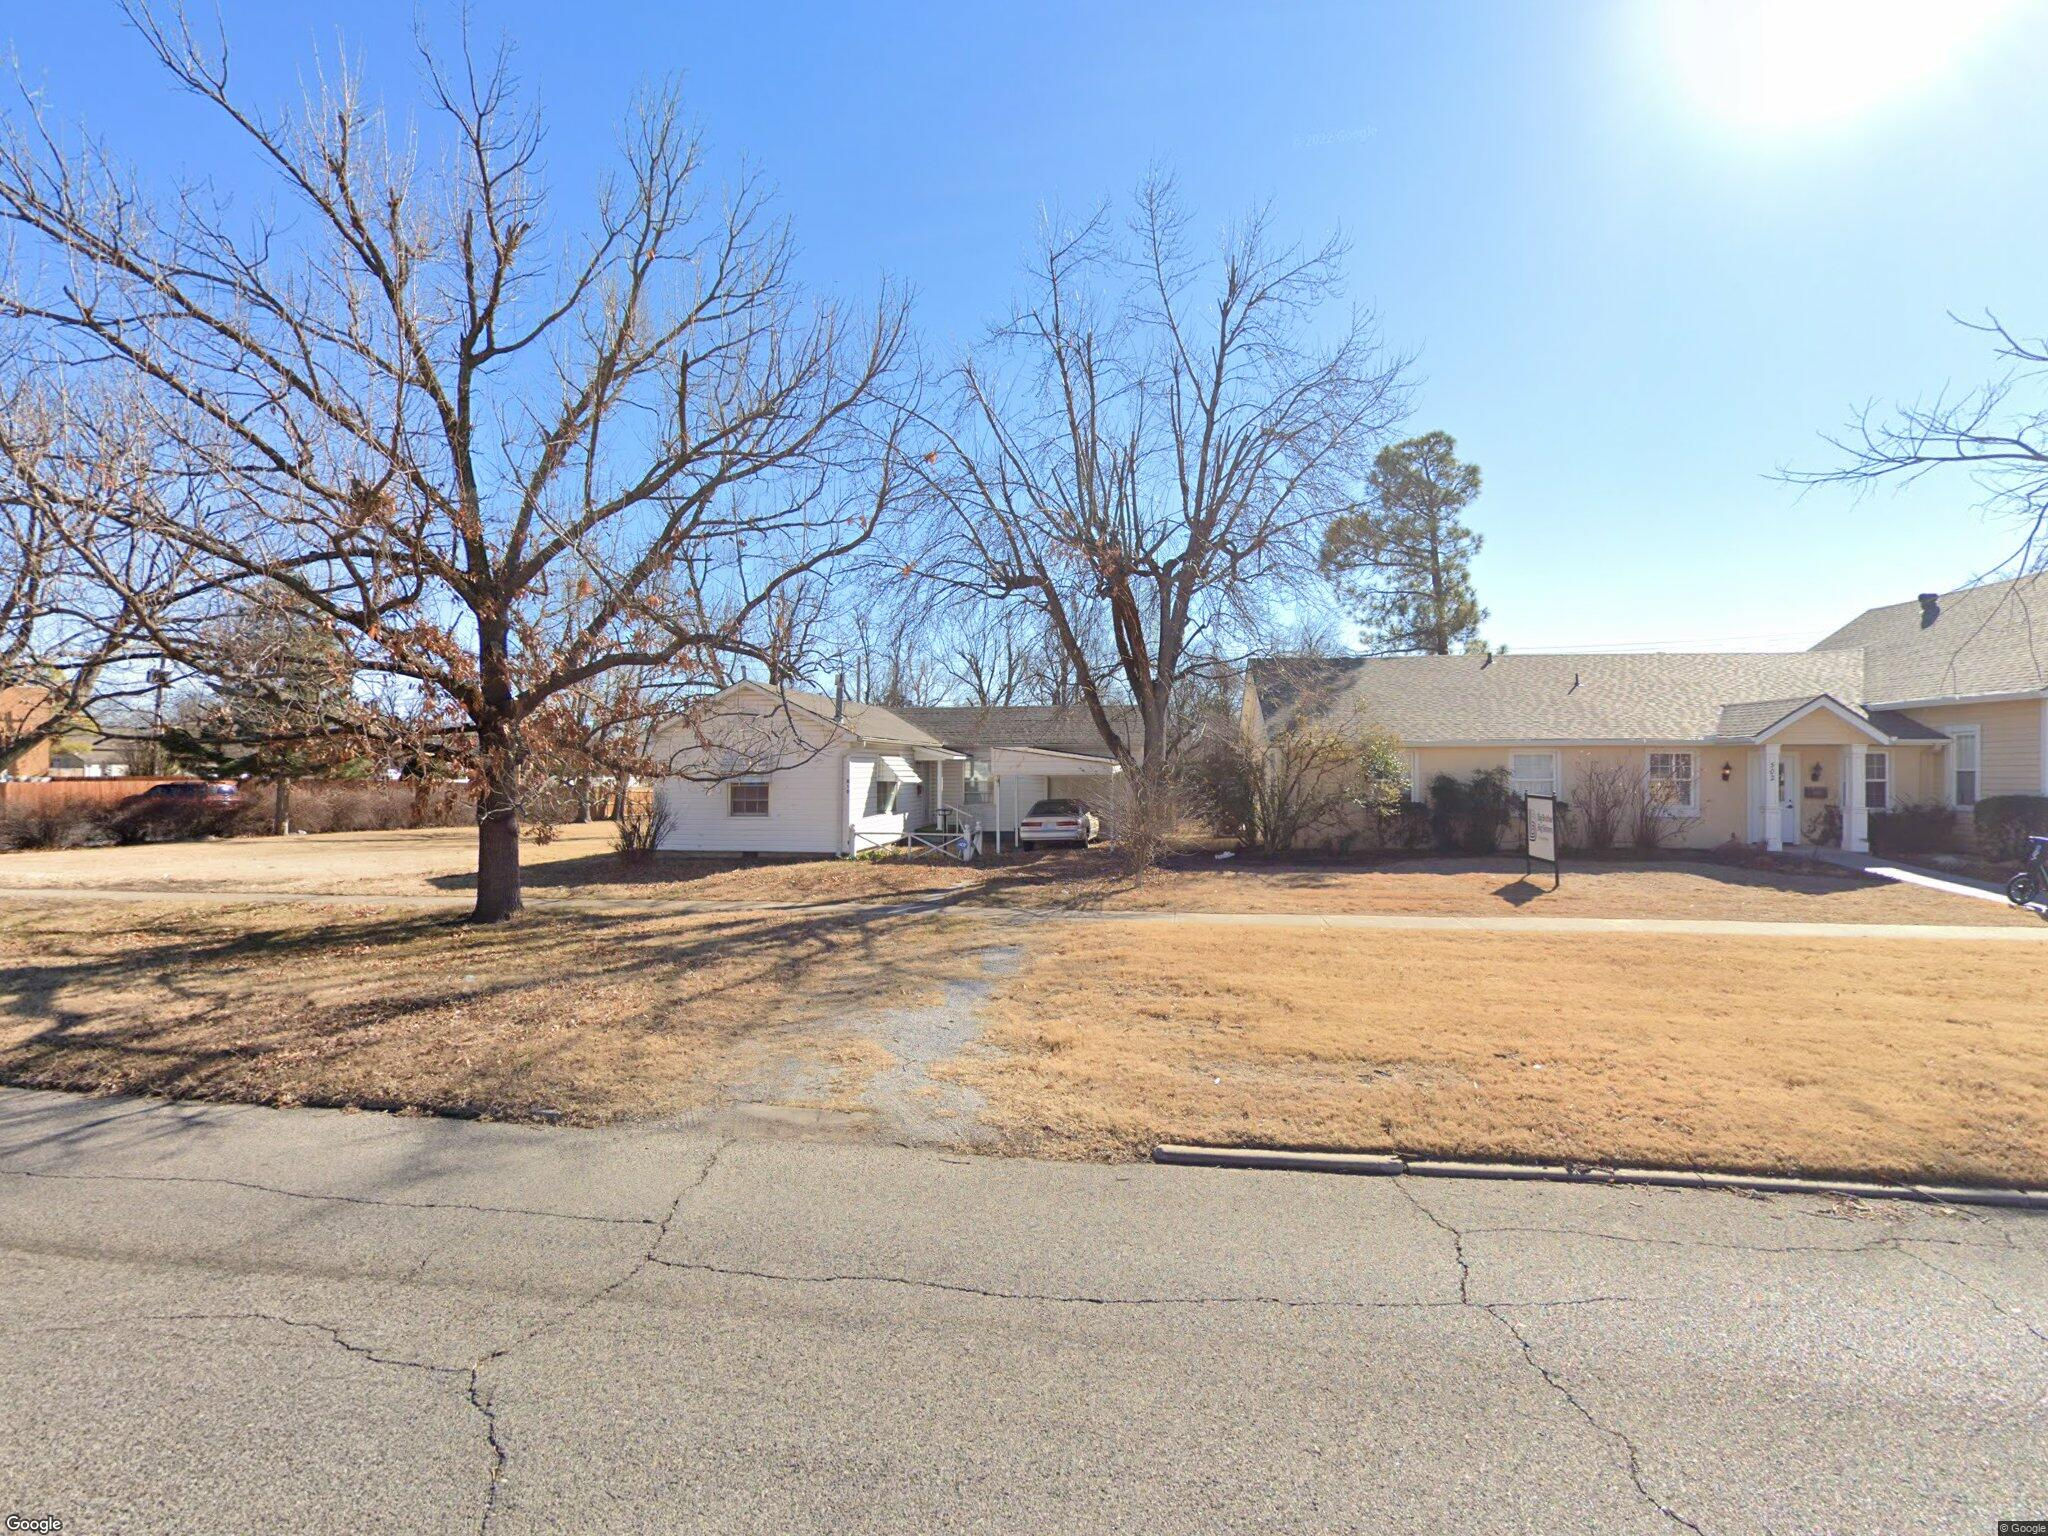 510 E Main St Norman Ok 73071 2 Bed 1 Bath Single Family Home